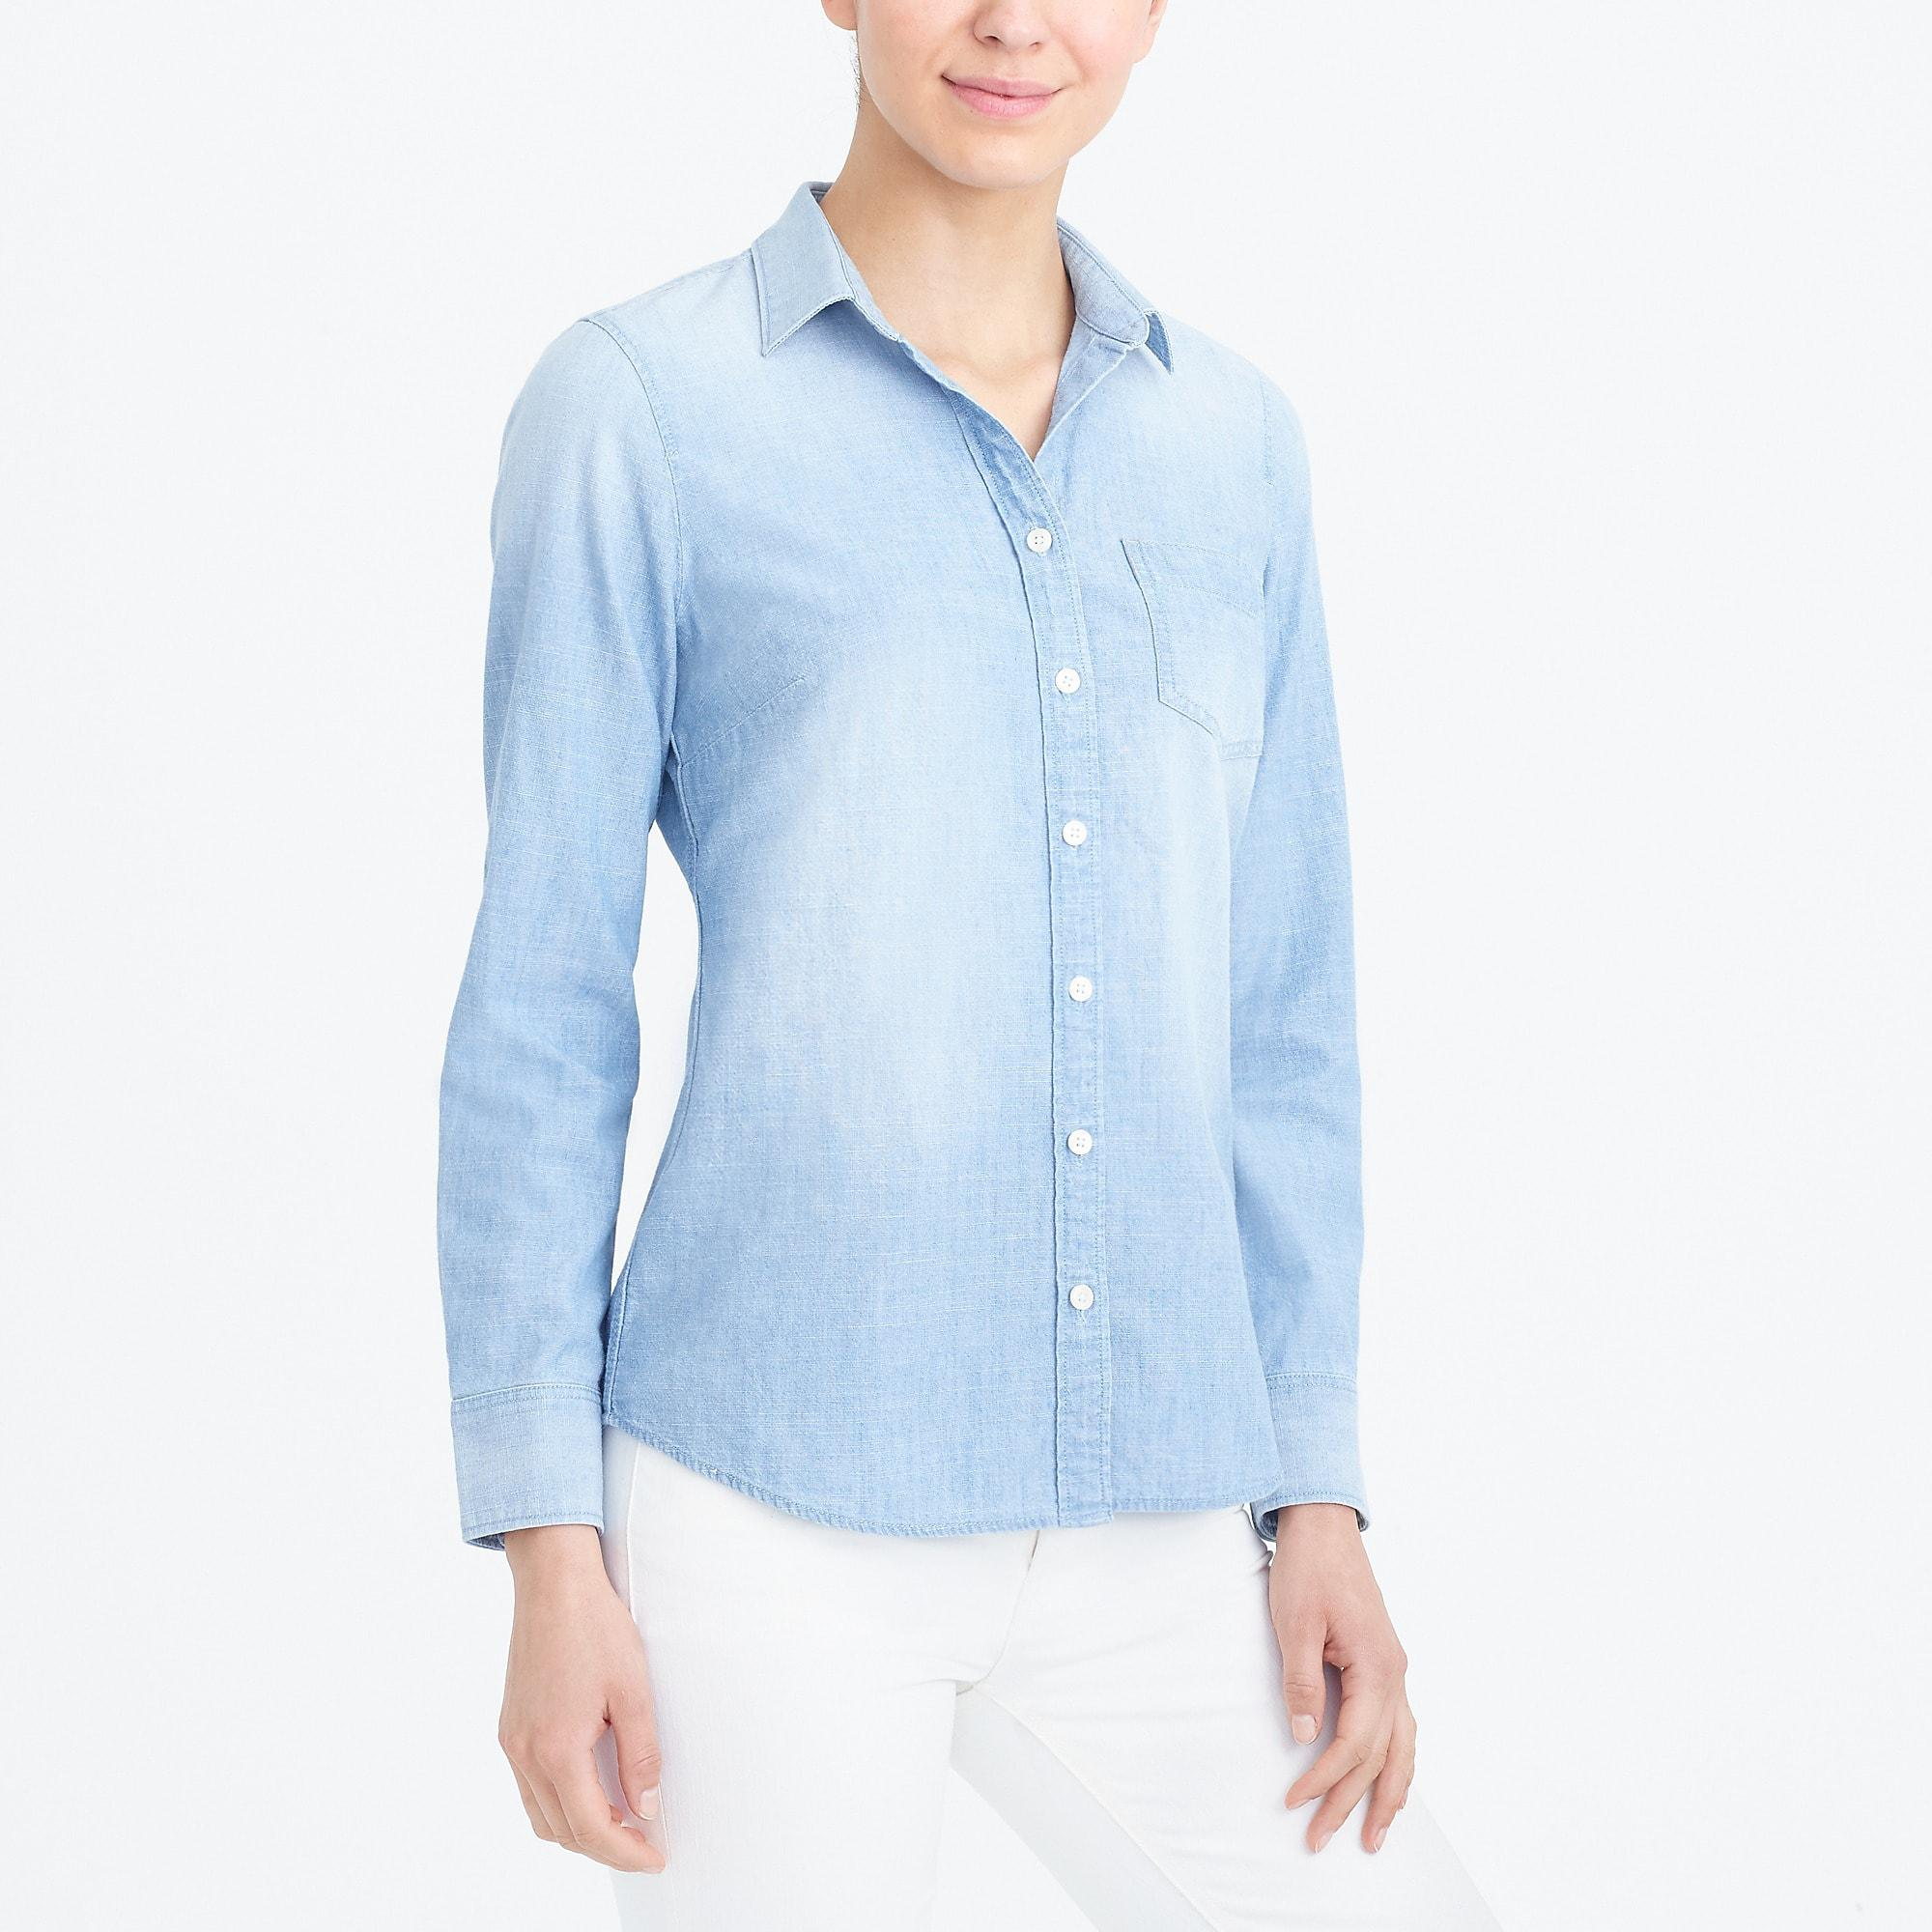 fe3be6f9 J.Crew Chambray Shirt In Perfect Fit in Blue - Lyst